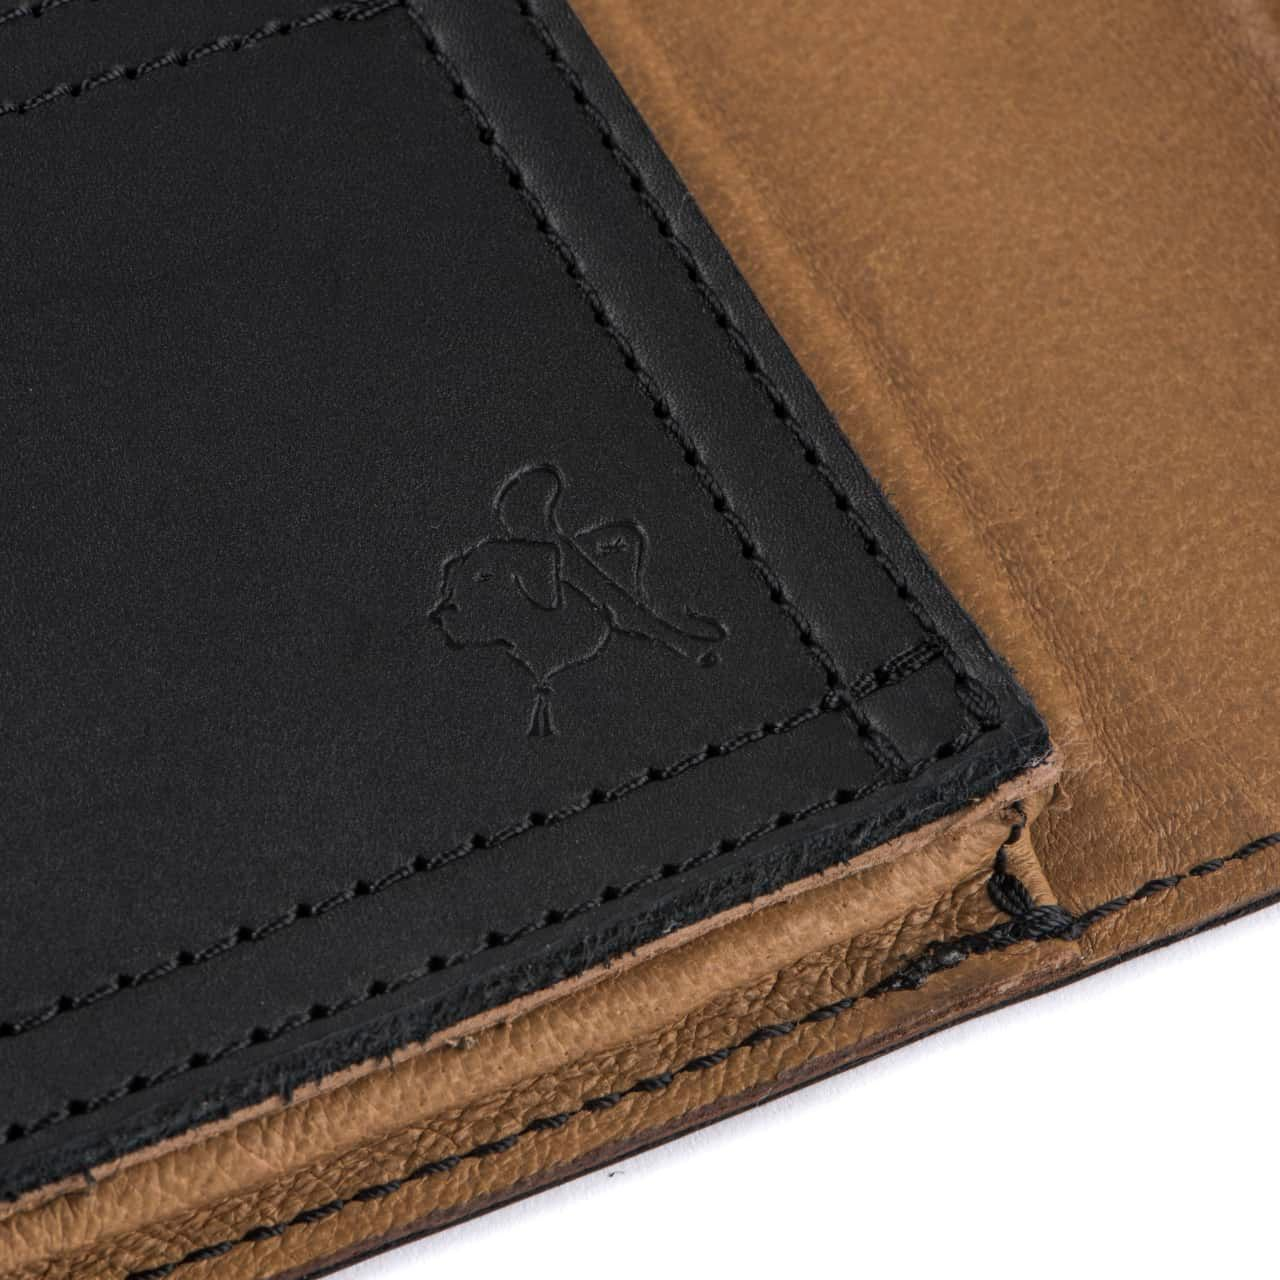 Leather Tablet Notepad Holder Zoomed in on Blue the Dog Stamp in the Color Black